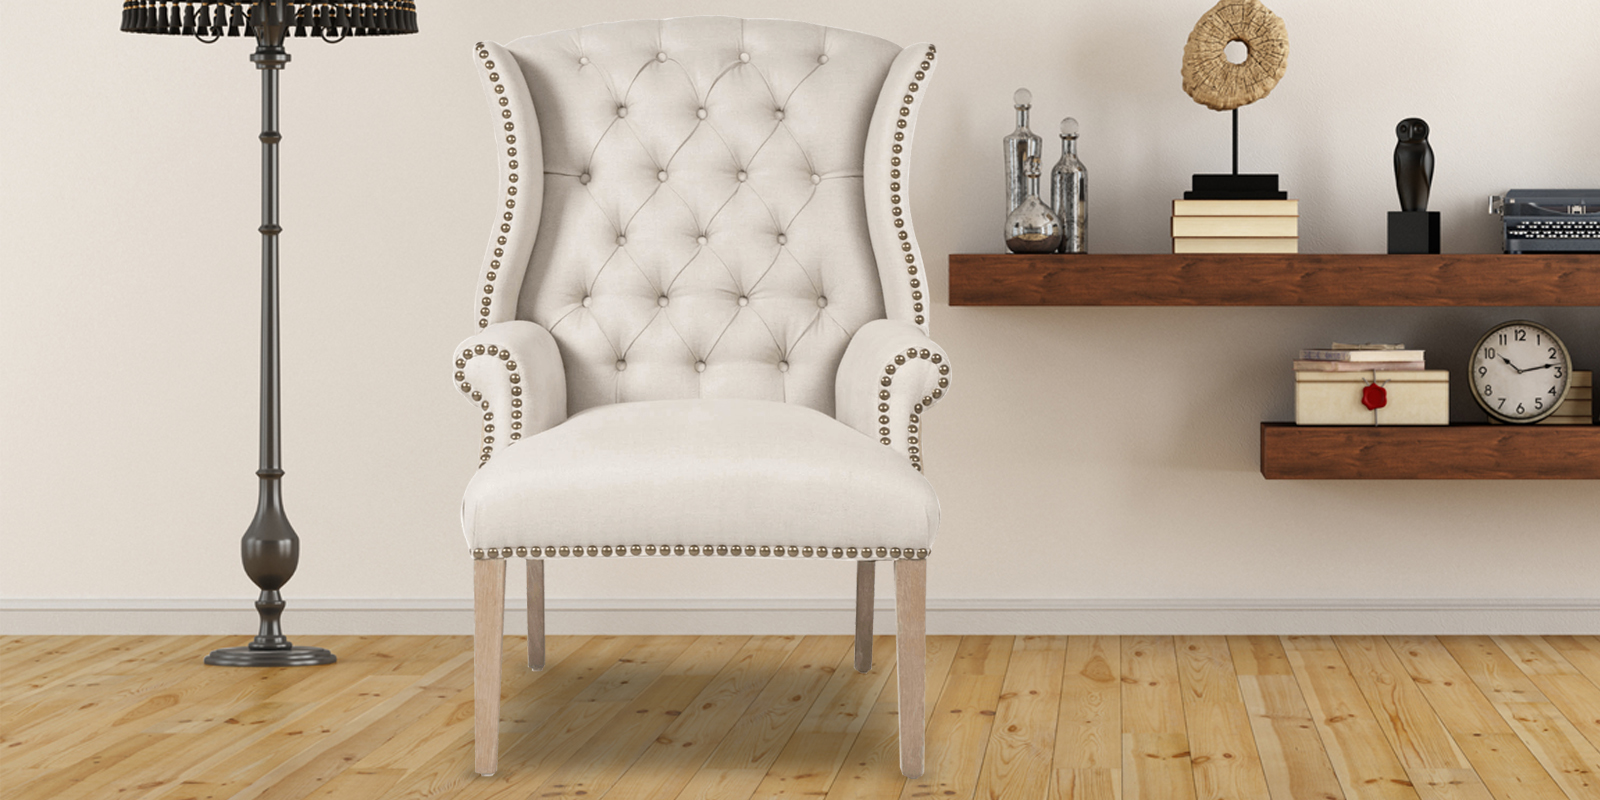 Maverick Classy High Back Arm Chair In Off White Colour